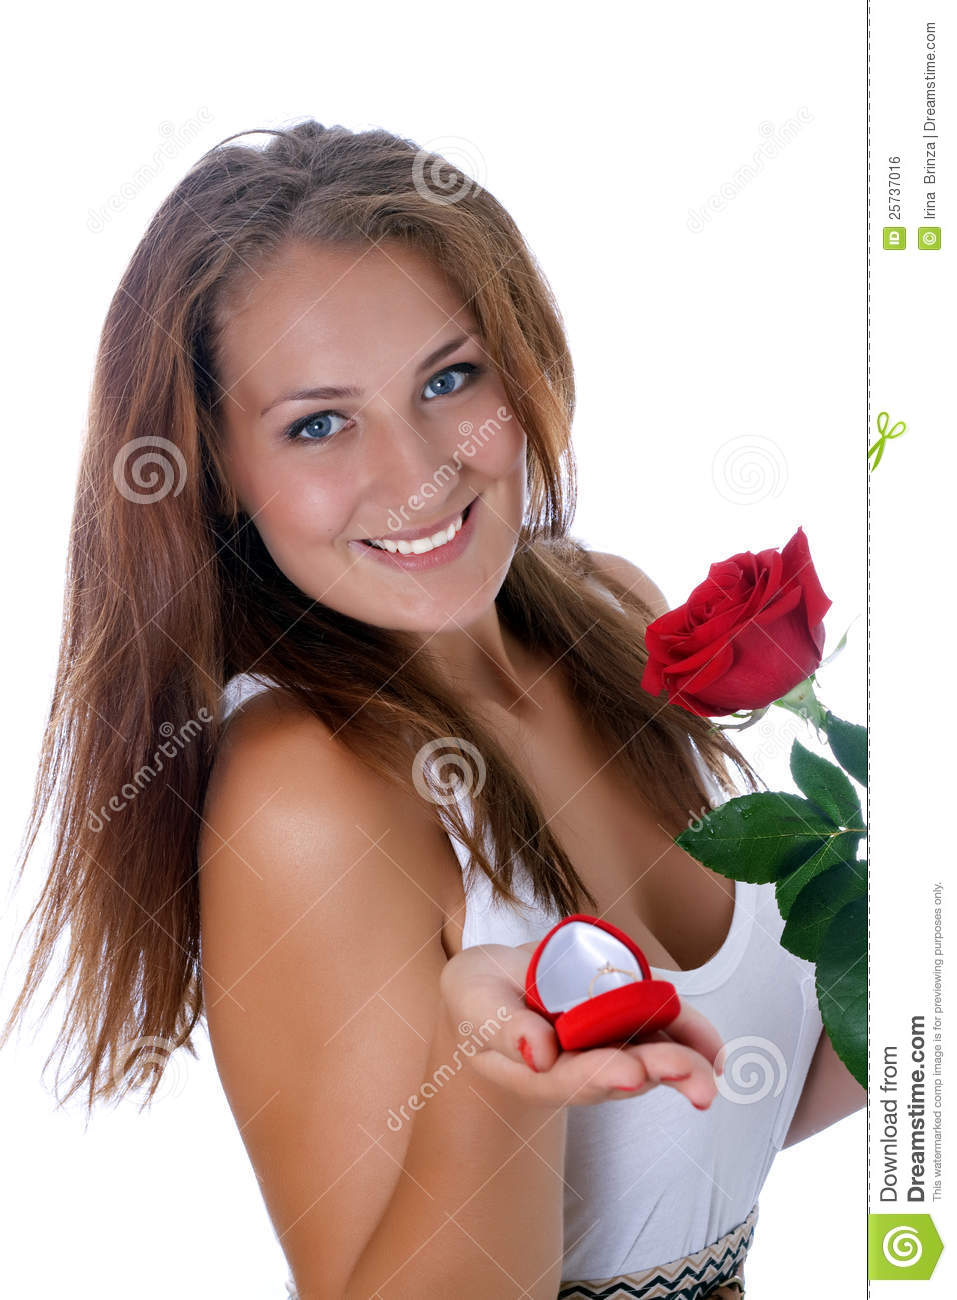 Girl holding jewellery gift box and flower.